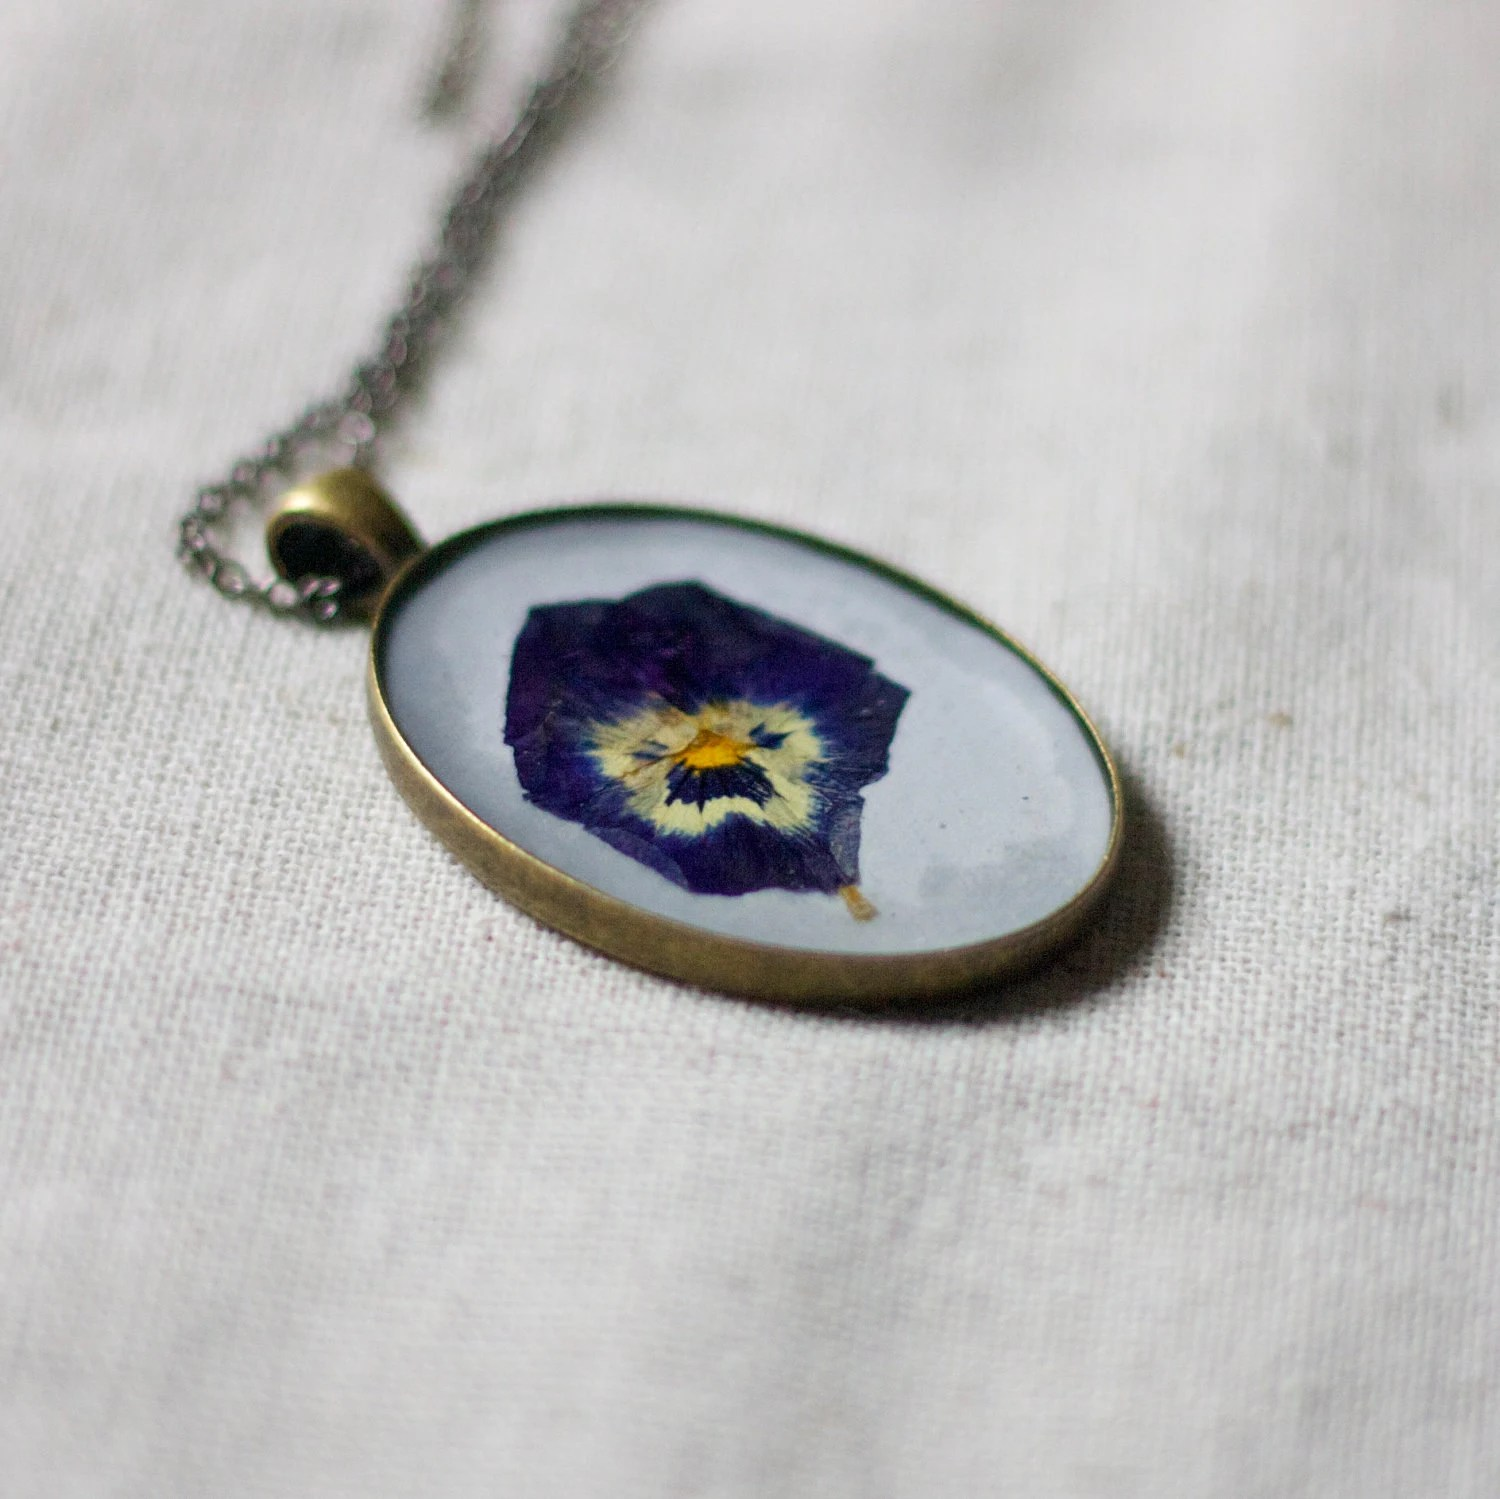 pressed flower necklace natural botanical jewelry handmade resin necklace dark purple pansy cottage garden shabby chic pendant - StudioBotanica